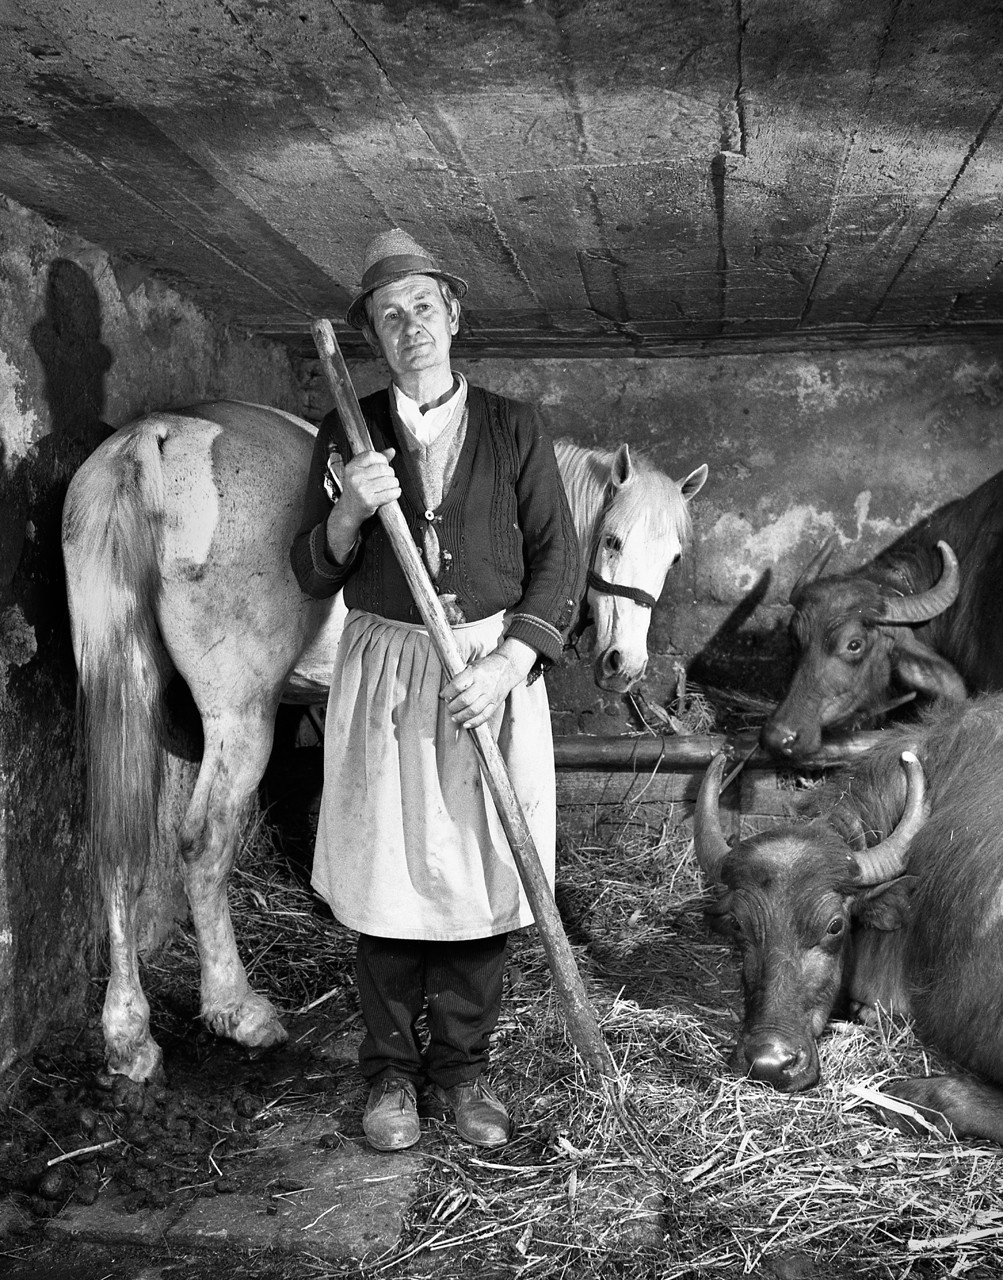 Péter Korniss: Farmer in his Stable